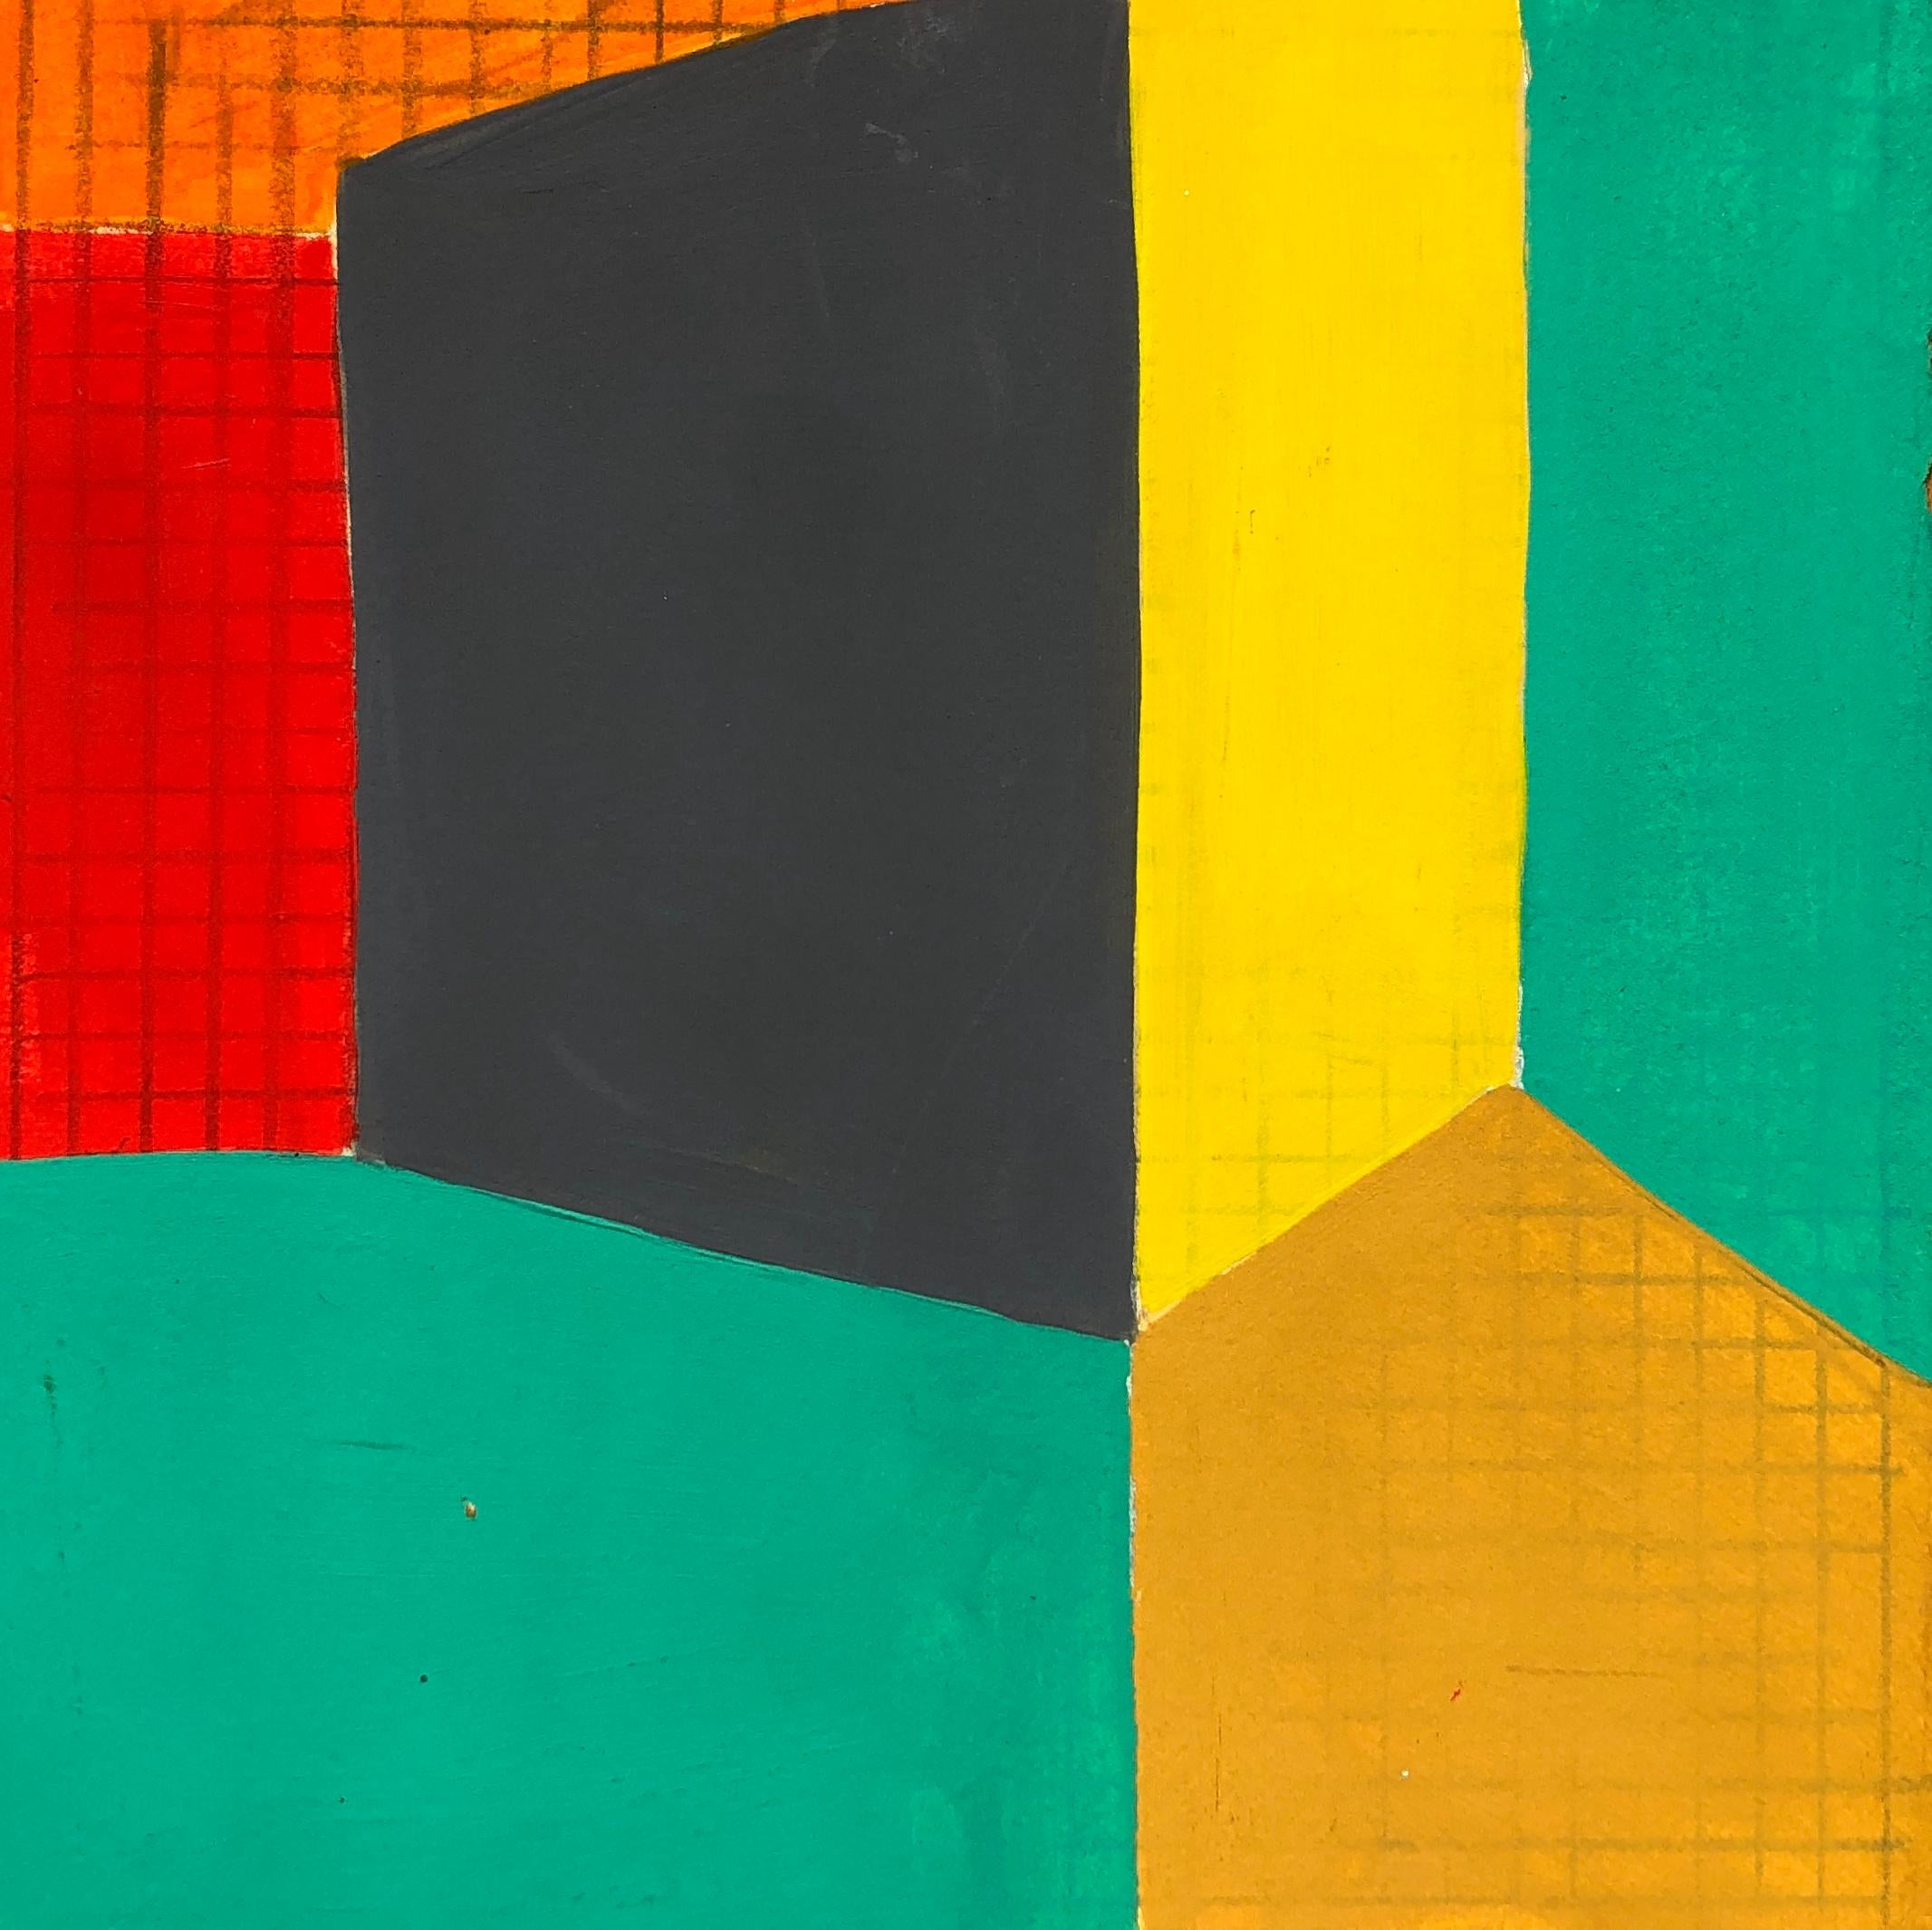 B1, abstract geometric pattern, mixed media on paper, green, yellow and red